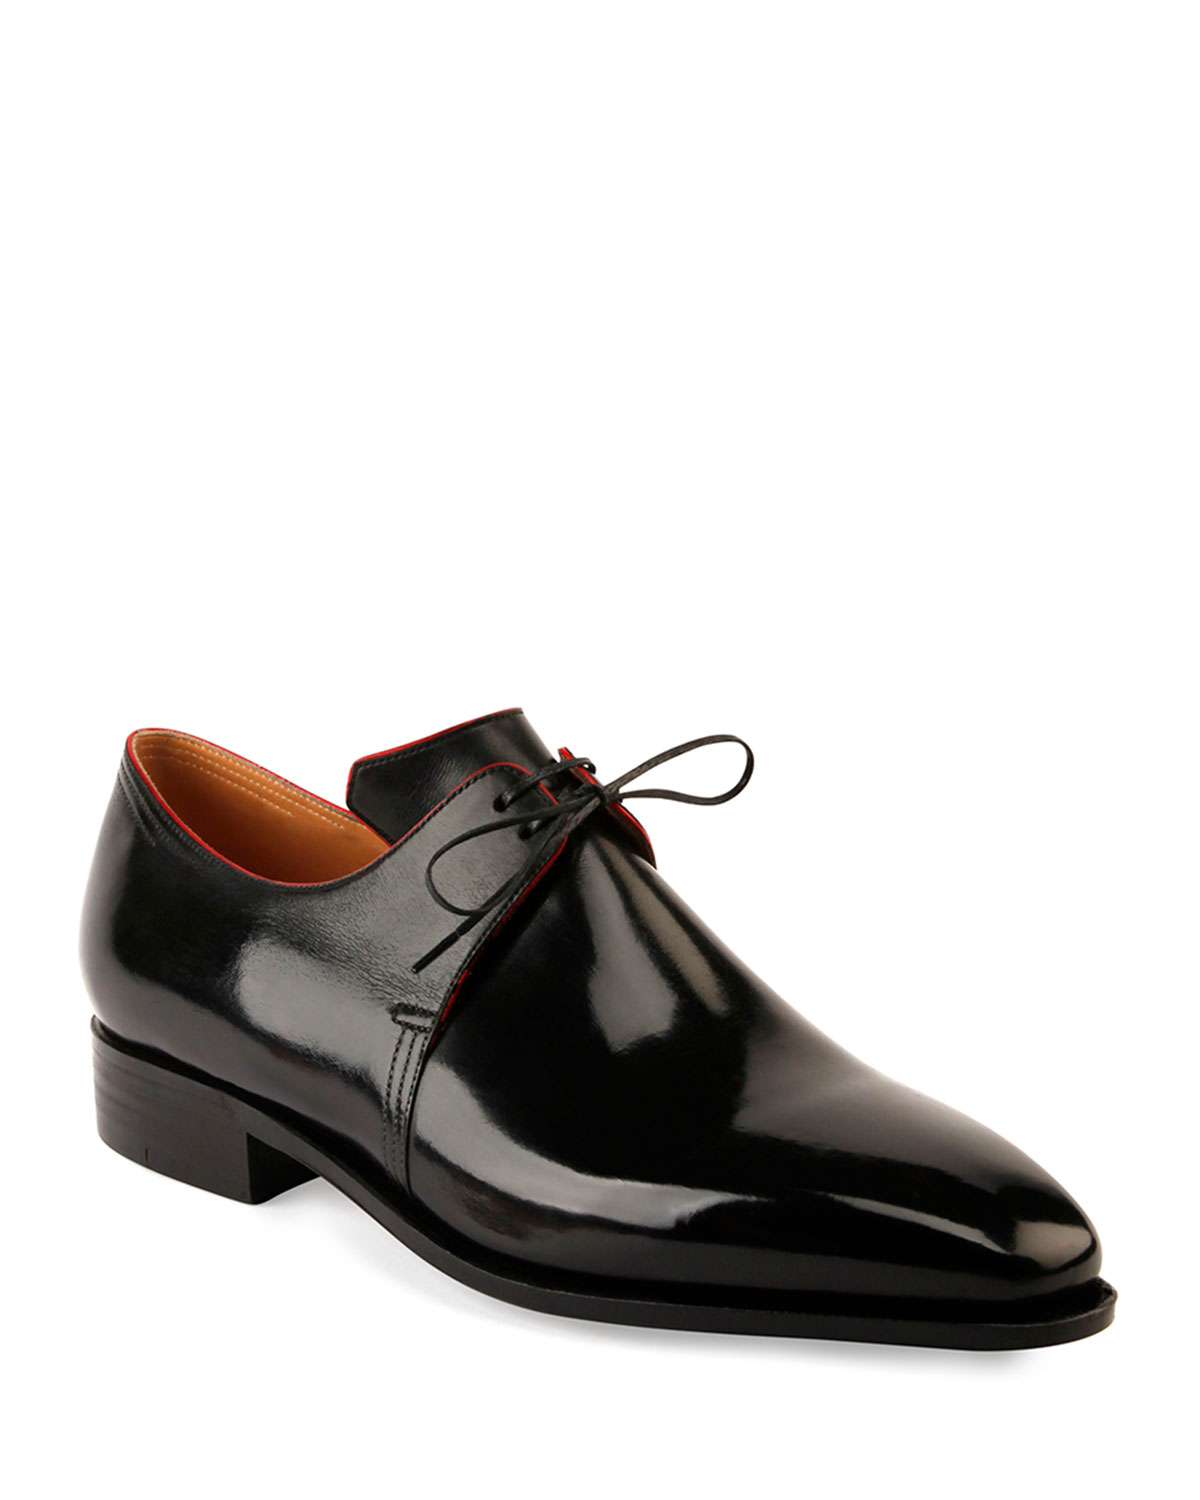 334fbb1d373 Corthay Arca Calf Leather Derby Shoe with Red Piping